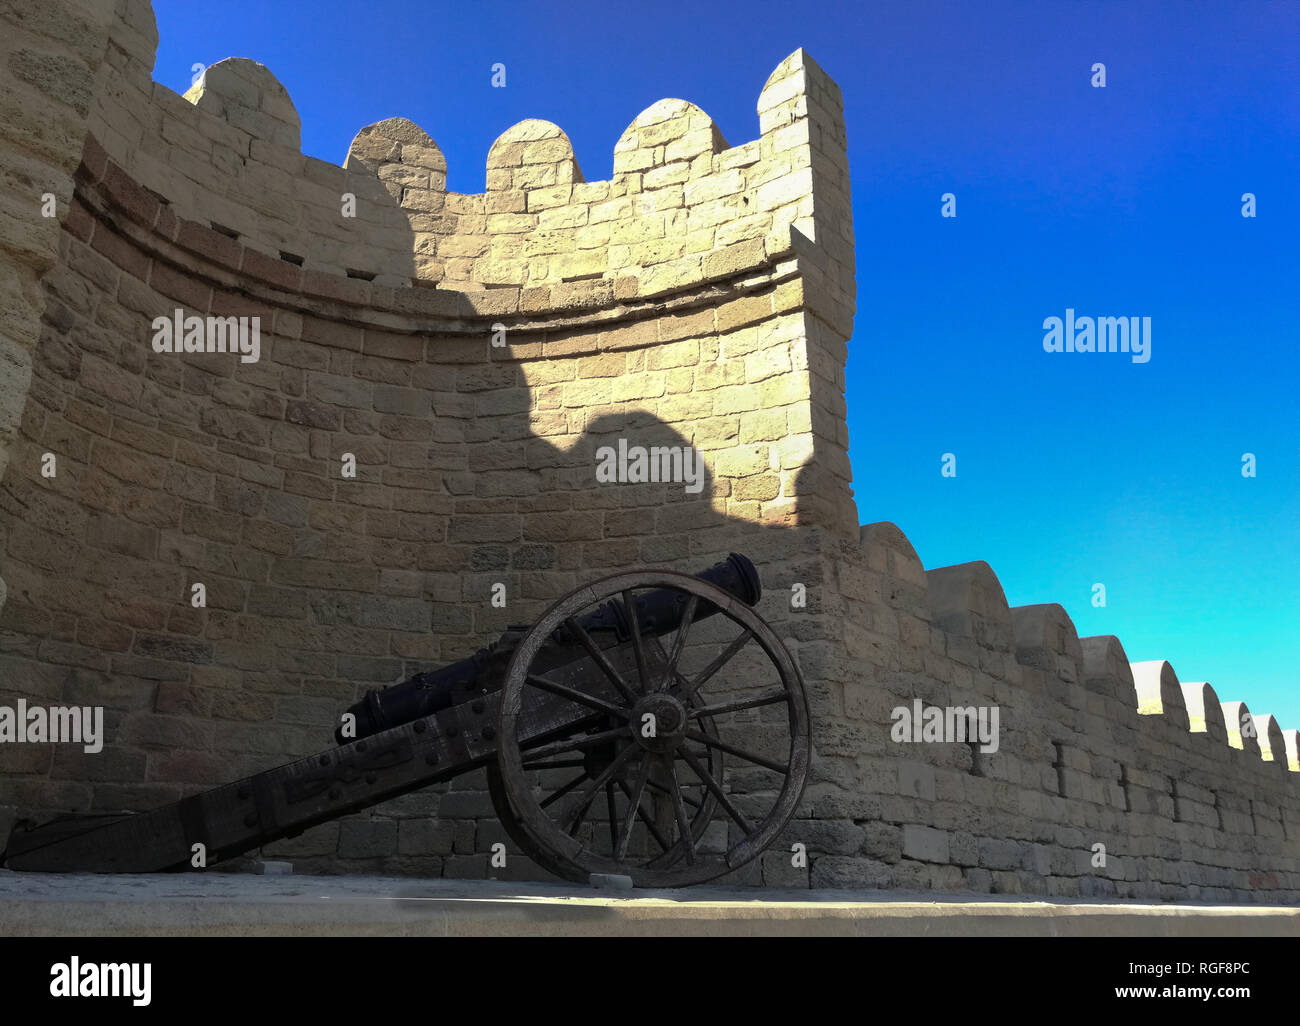 An old canon in old town by the city wall. Old city is a inner city Baku, Azerbaijan rounded by city walls. - Stock Image